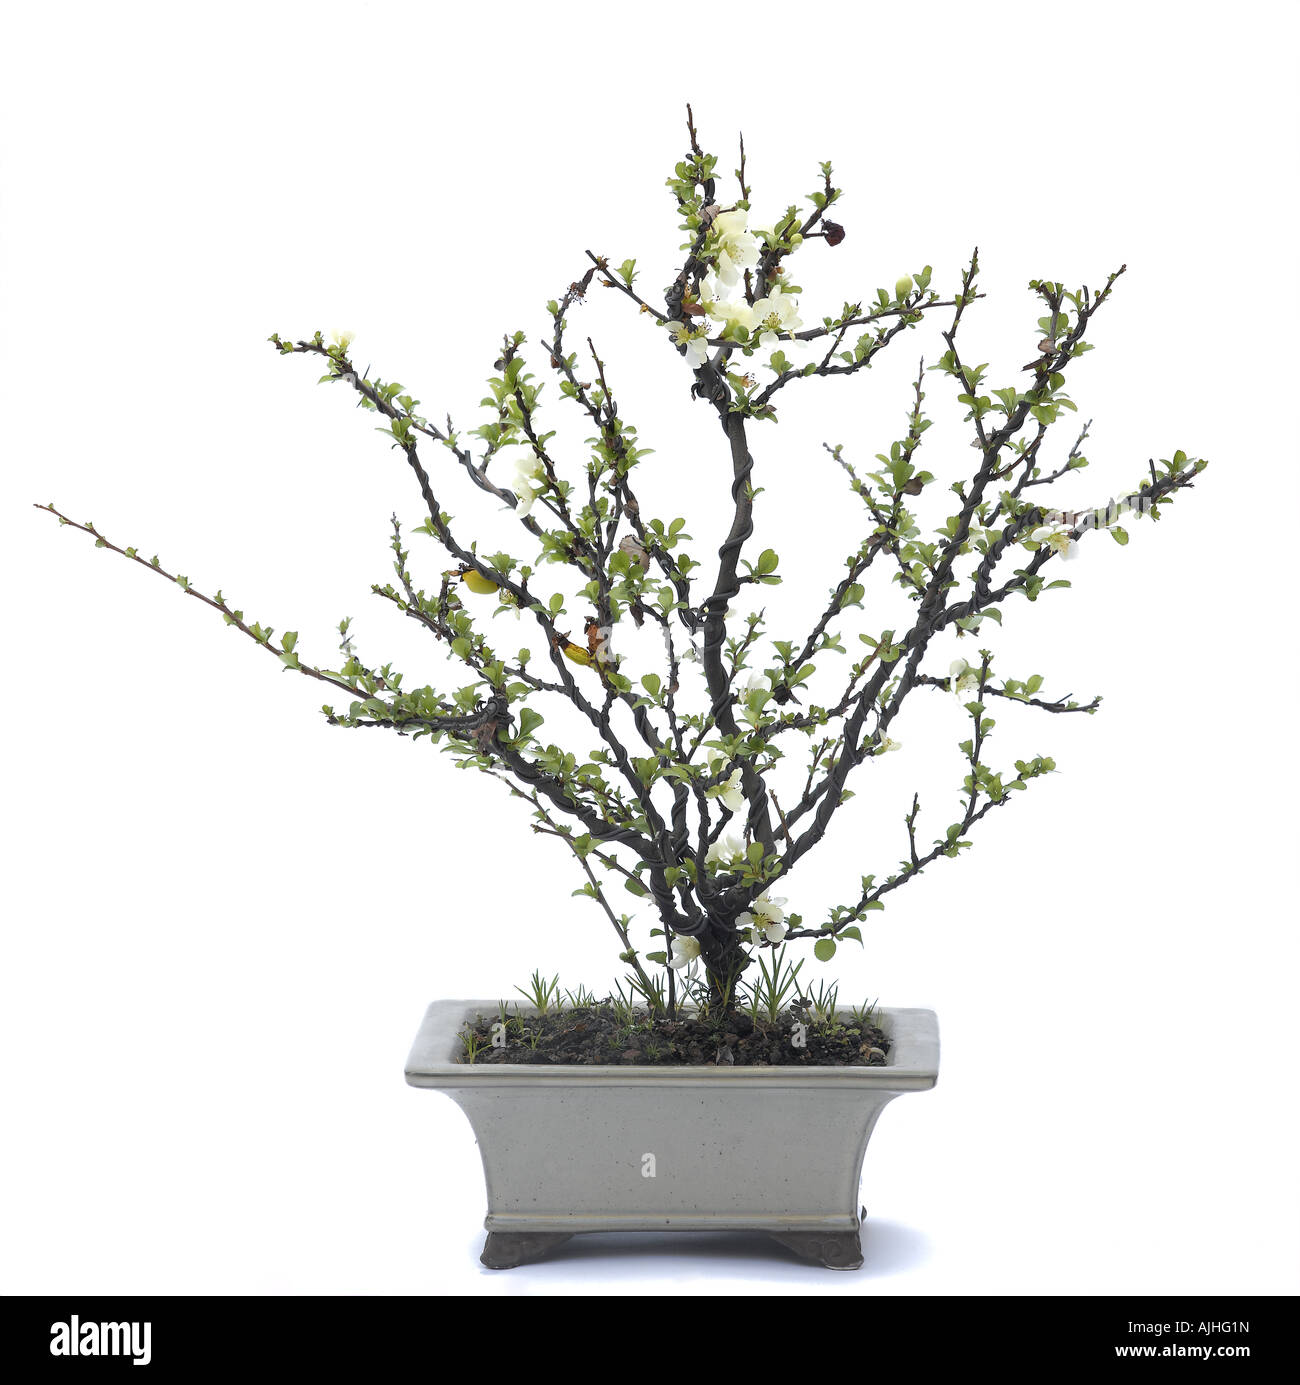 Japanese Flowering Quince Bonsai Chaenomeles Japonica Or Chaenomeles Stock Photo Alamy